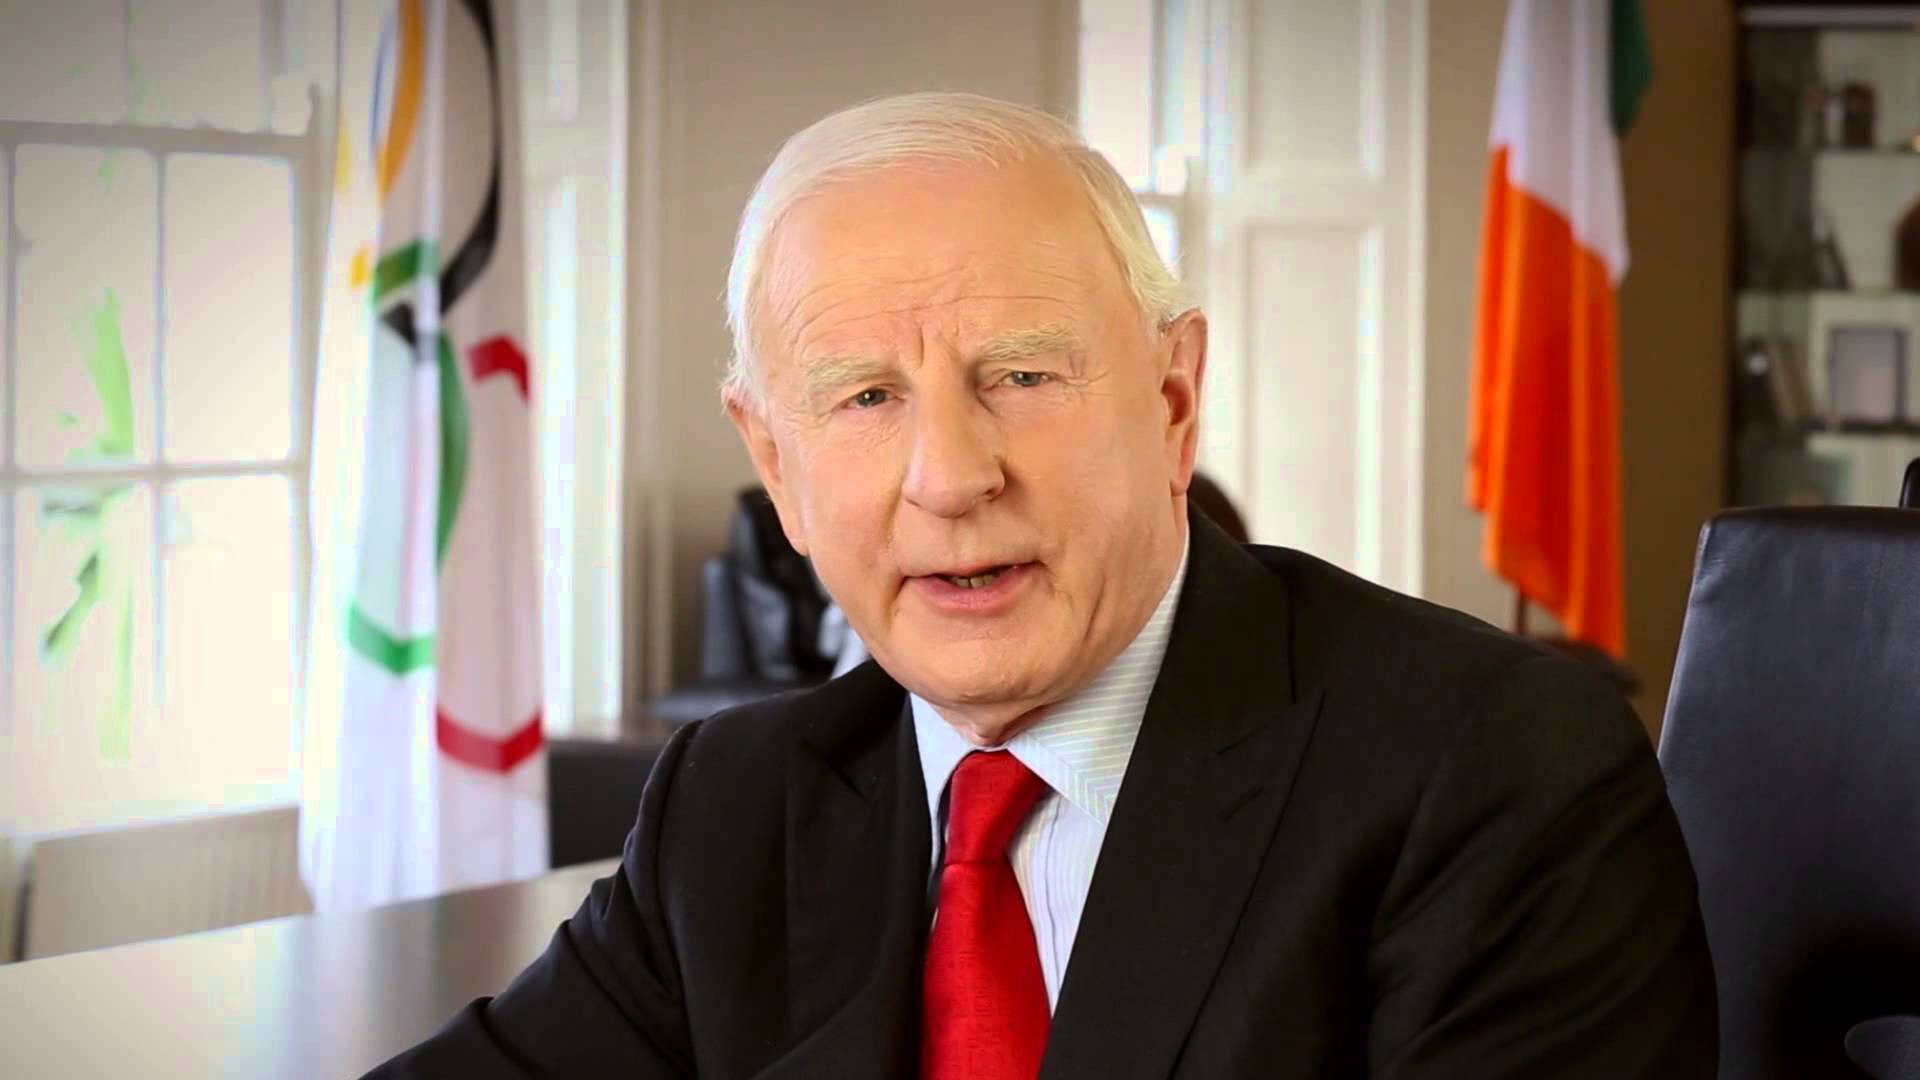 Former OCI President Patrick Hickey negotiated the deal without the approval of the Executive Board ©YouTube